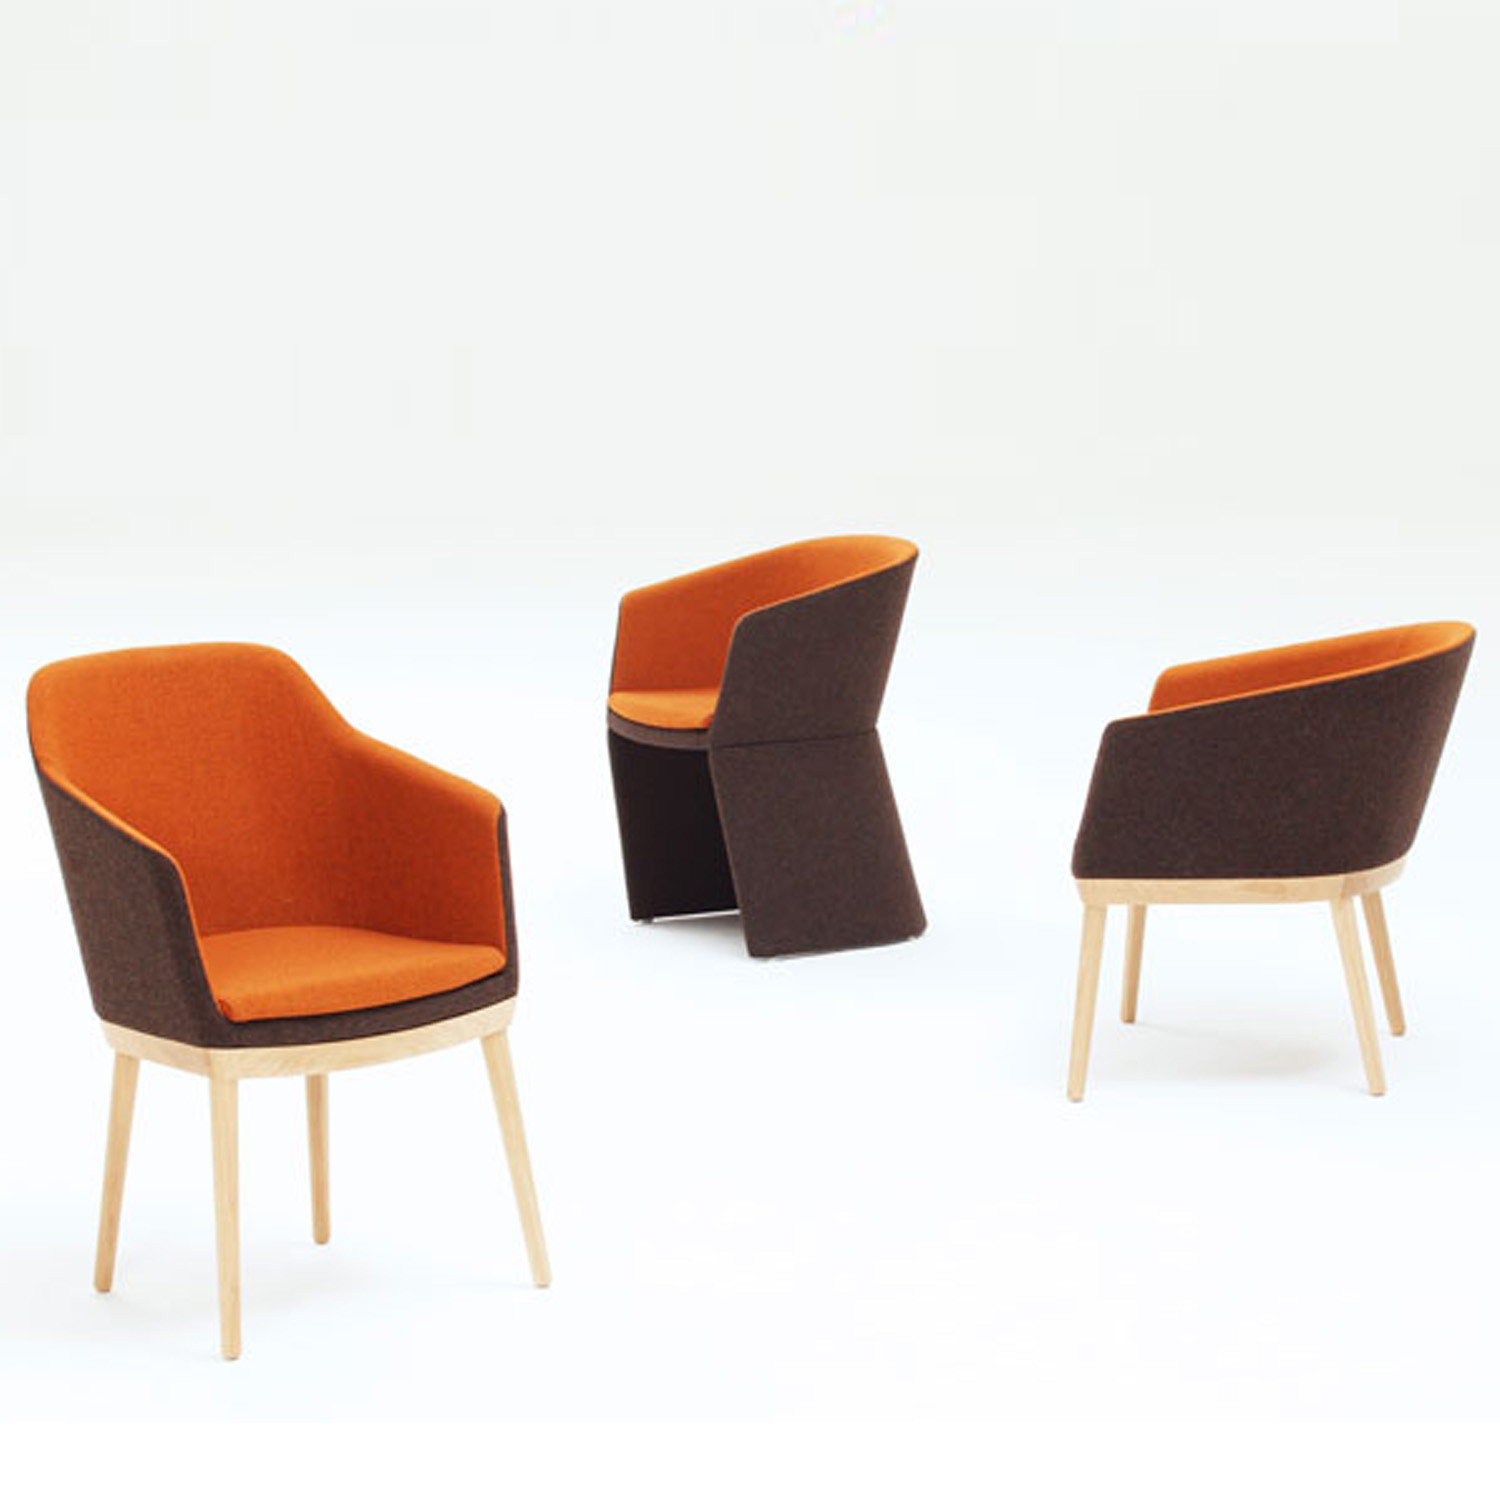 Drum Chairs in 3 Base Options